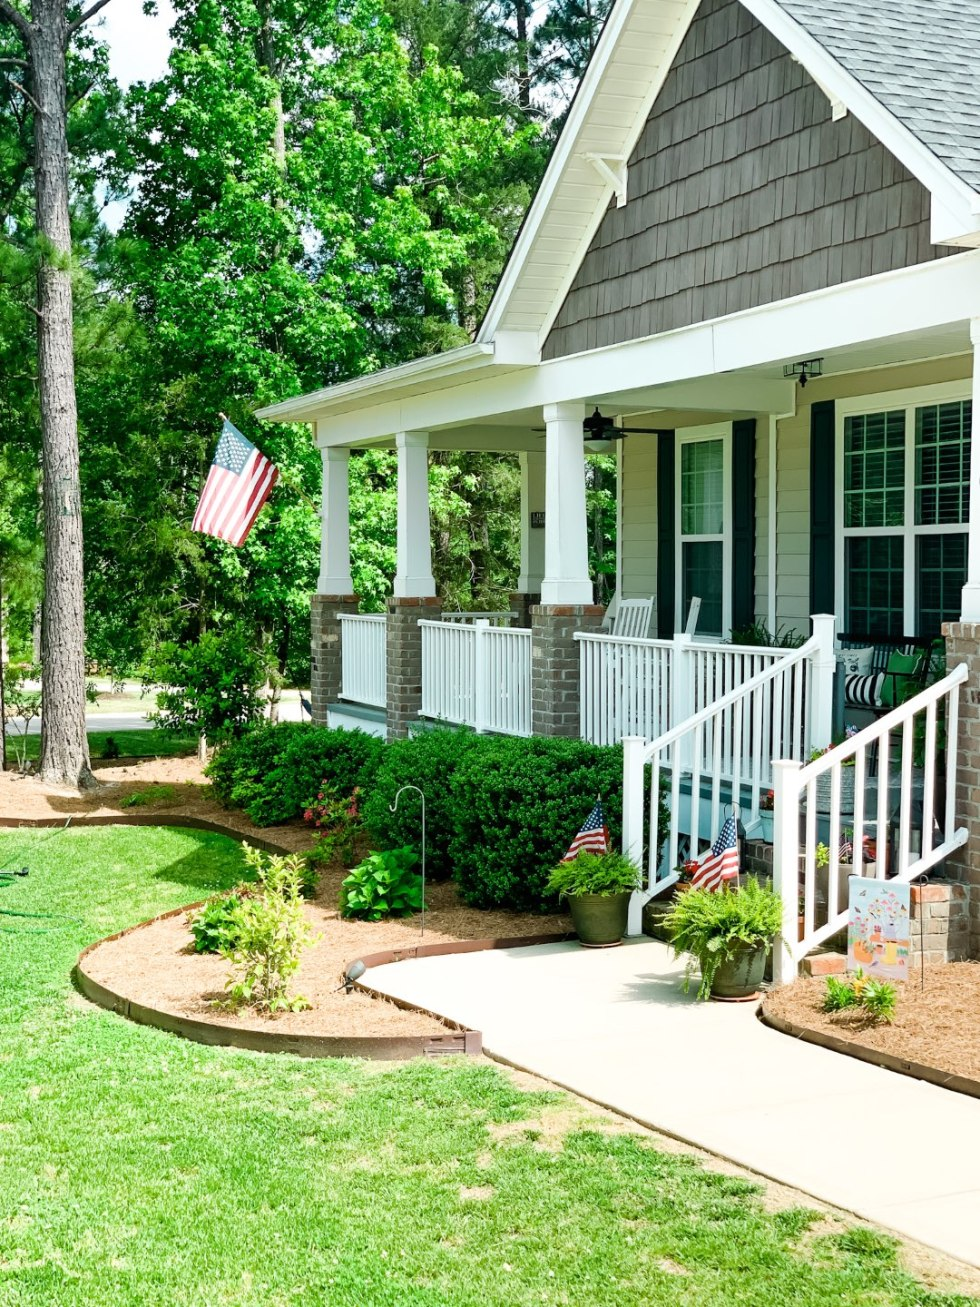 3 Tips for Making the Most of Your Front Porch - I'm Fixin' To - @mbg0112